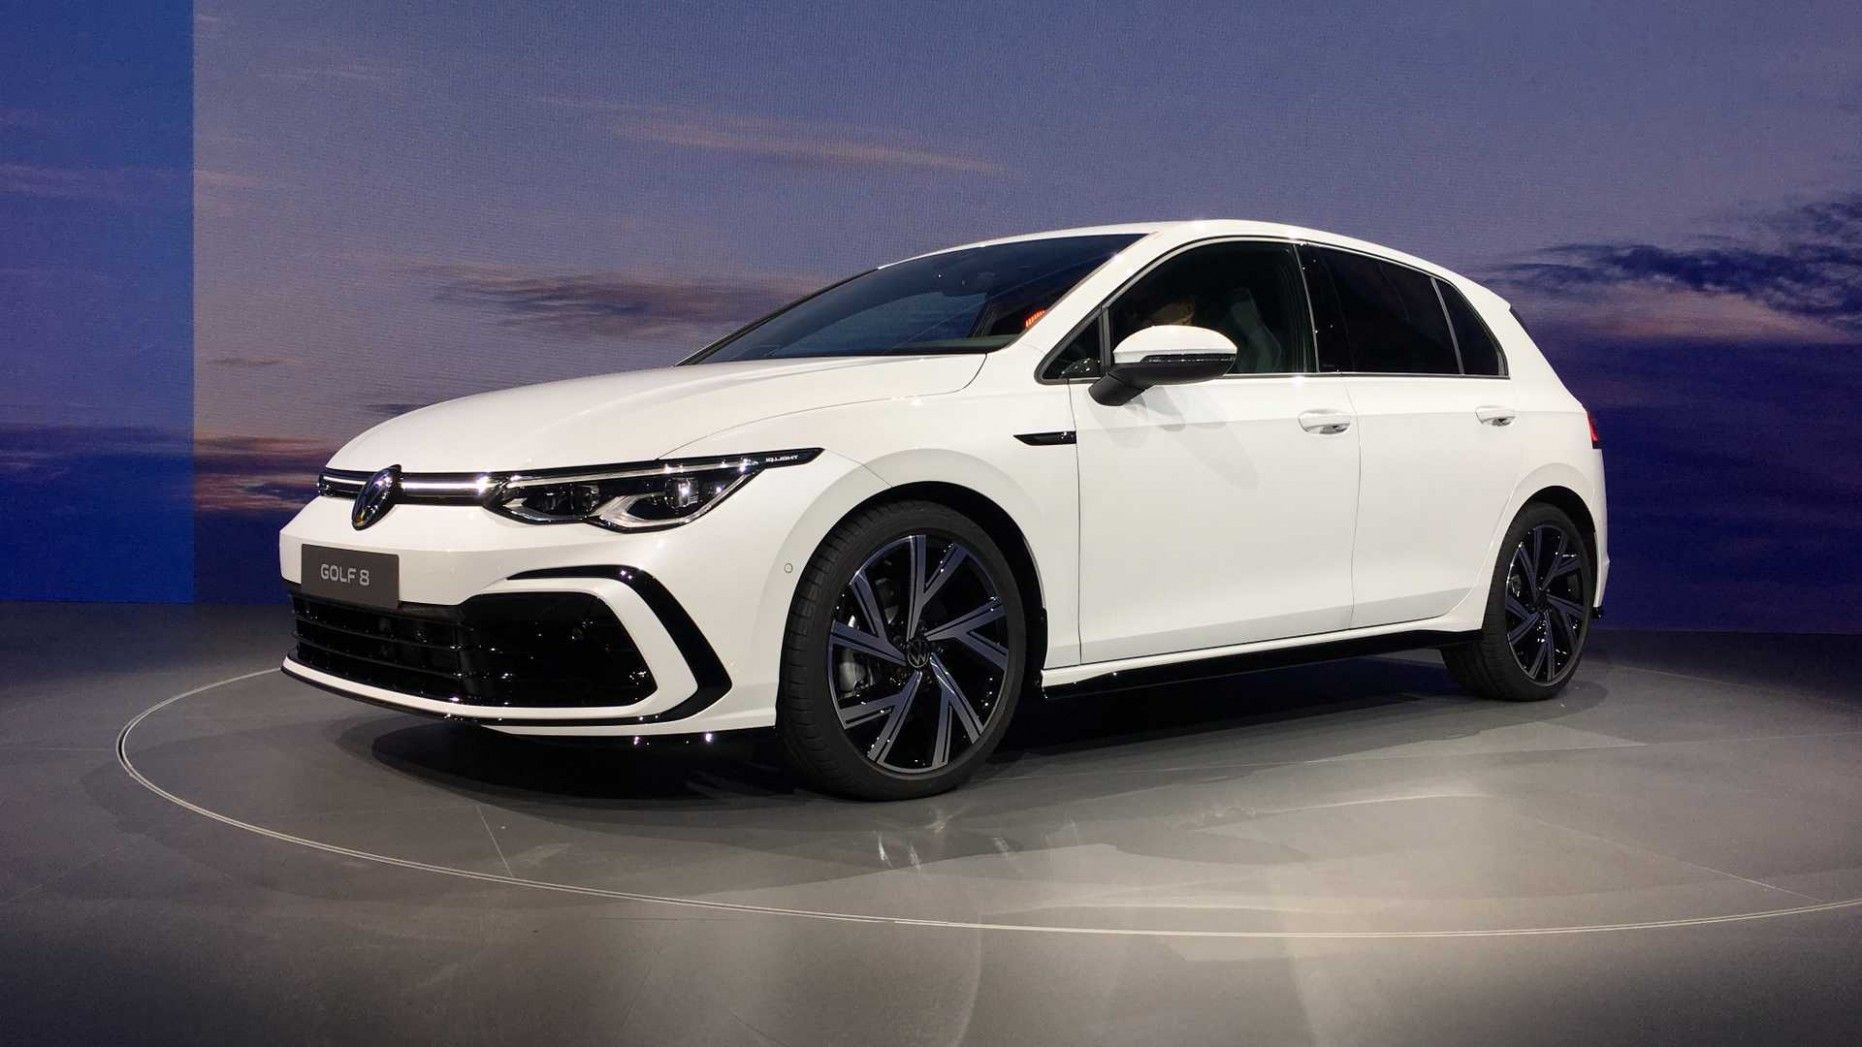 5 Advantages Of Volkswagen Cars In India 2020 Design And How You Can Make Full Use Of It